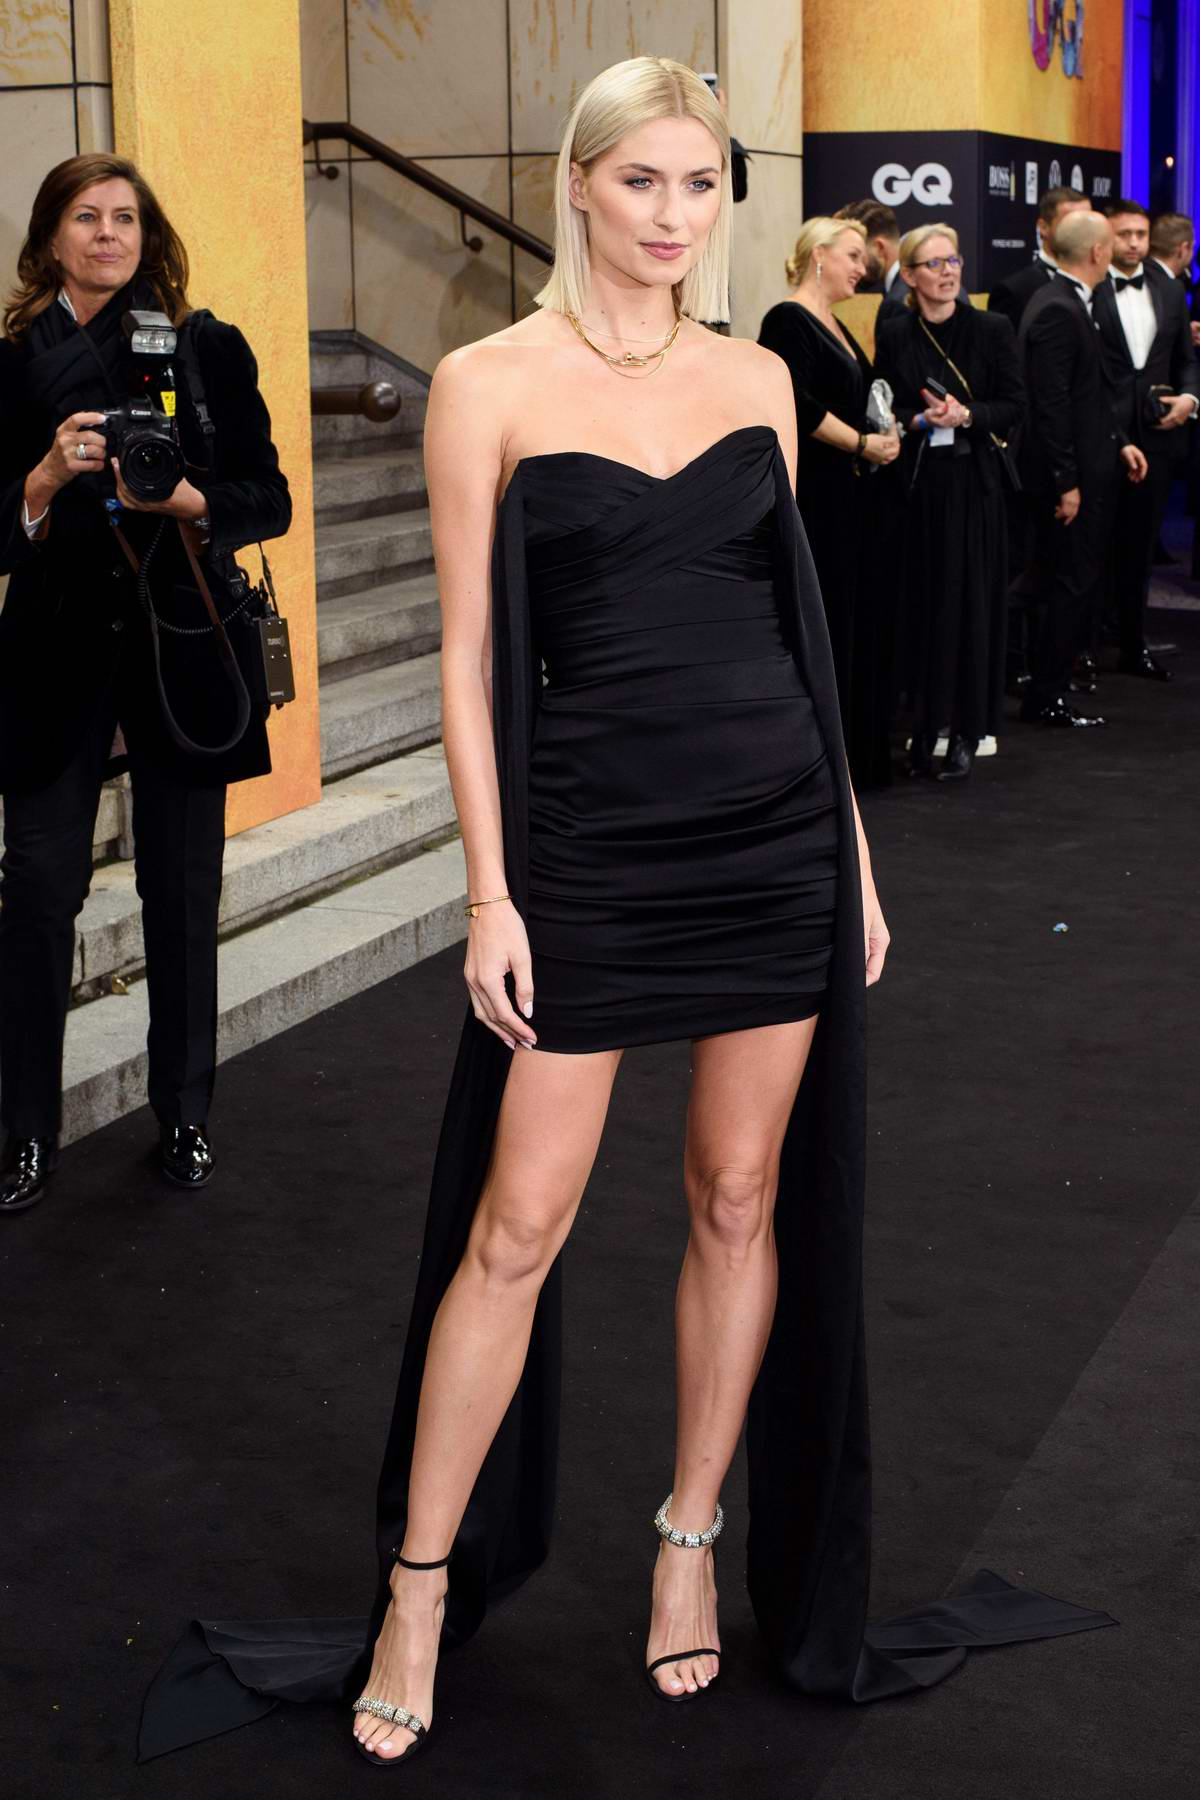 Lena Gercke attends the 2019 GQ Men of the Year Awards in Berlin, Germany